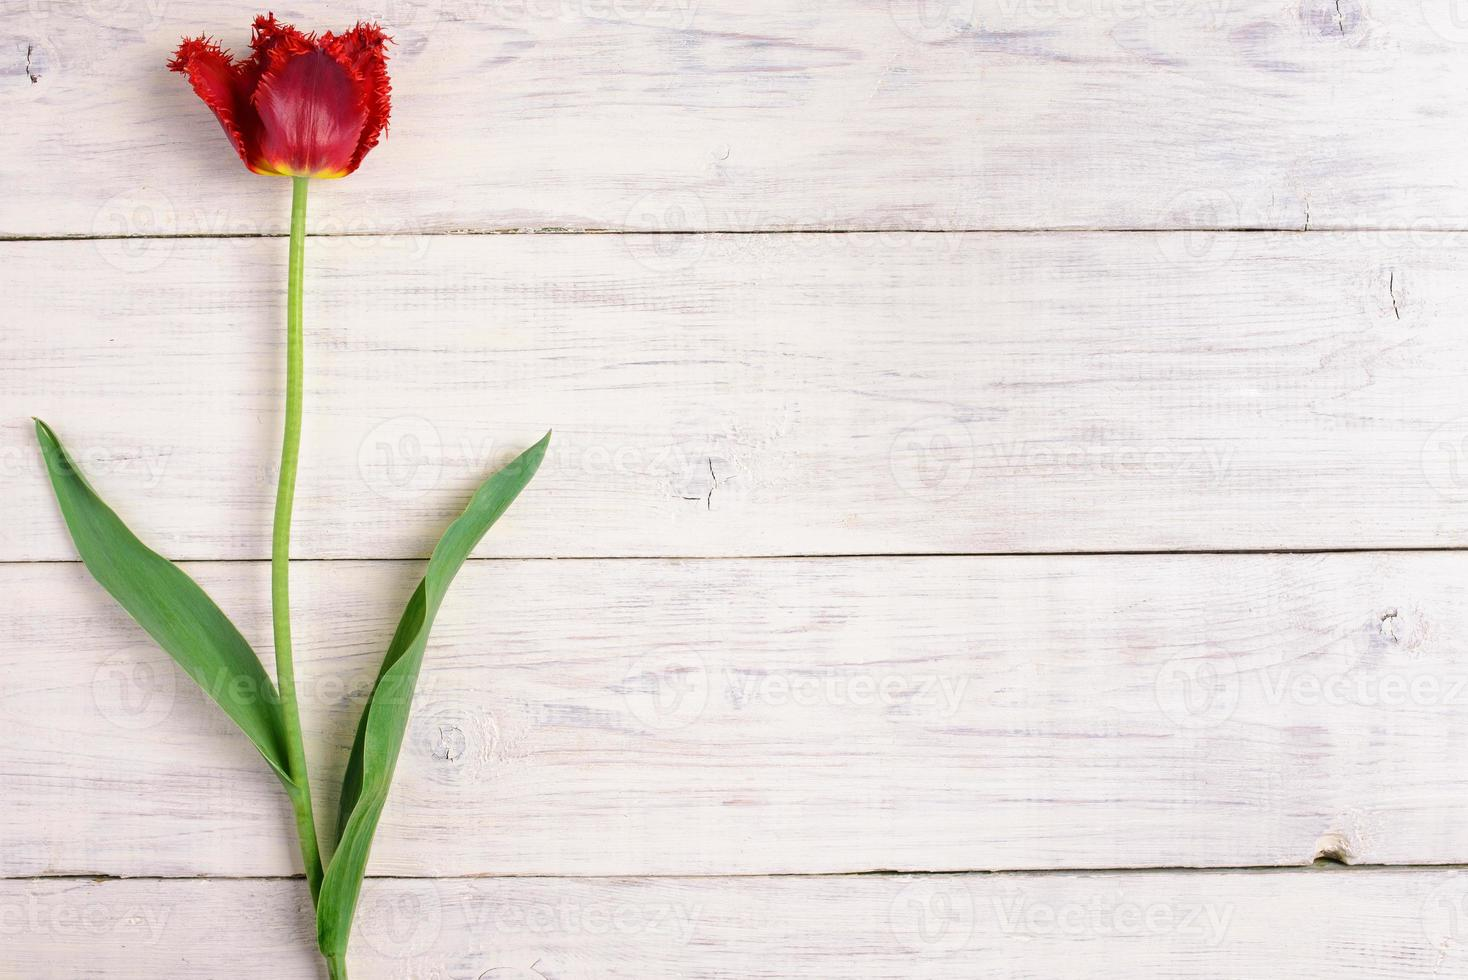 Red tulip flower on wooden background. Top view, copy space photo